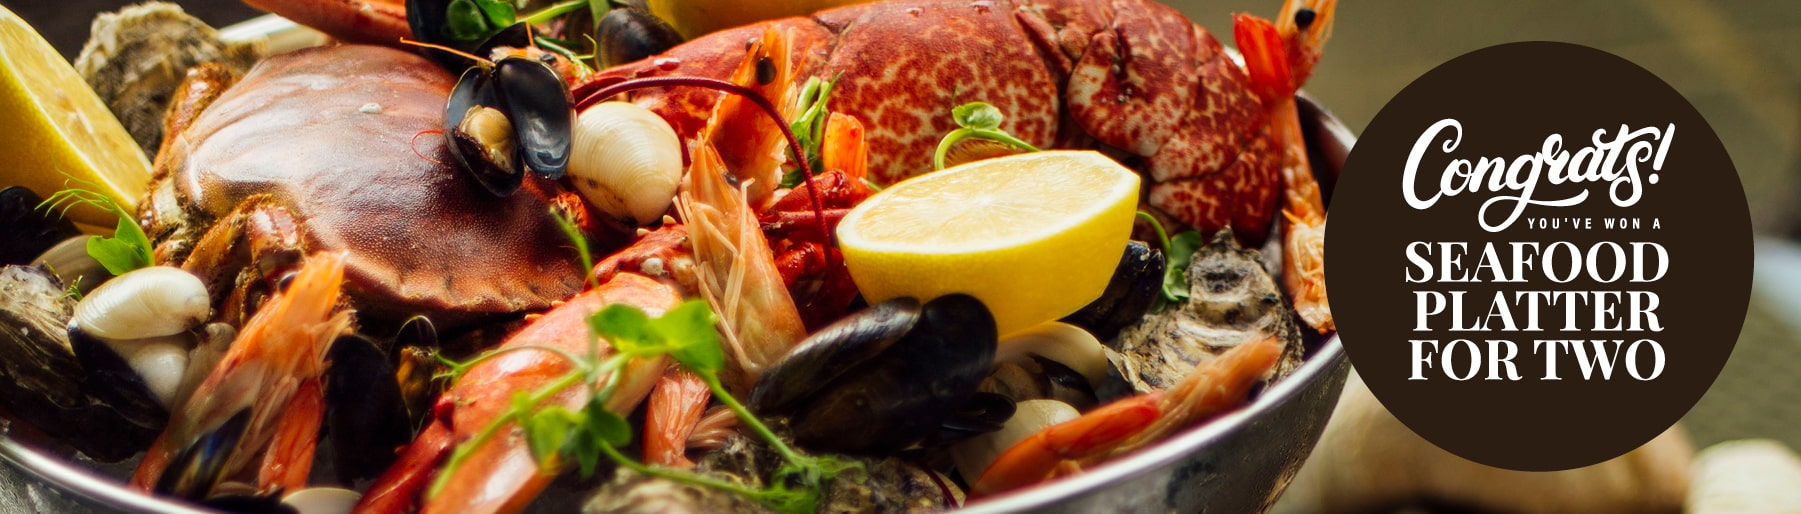 Win a Seafood Platter for Two